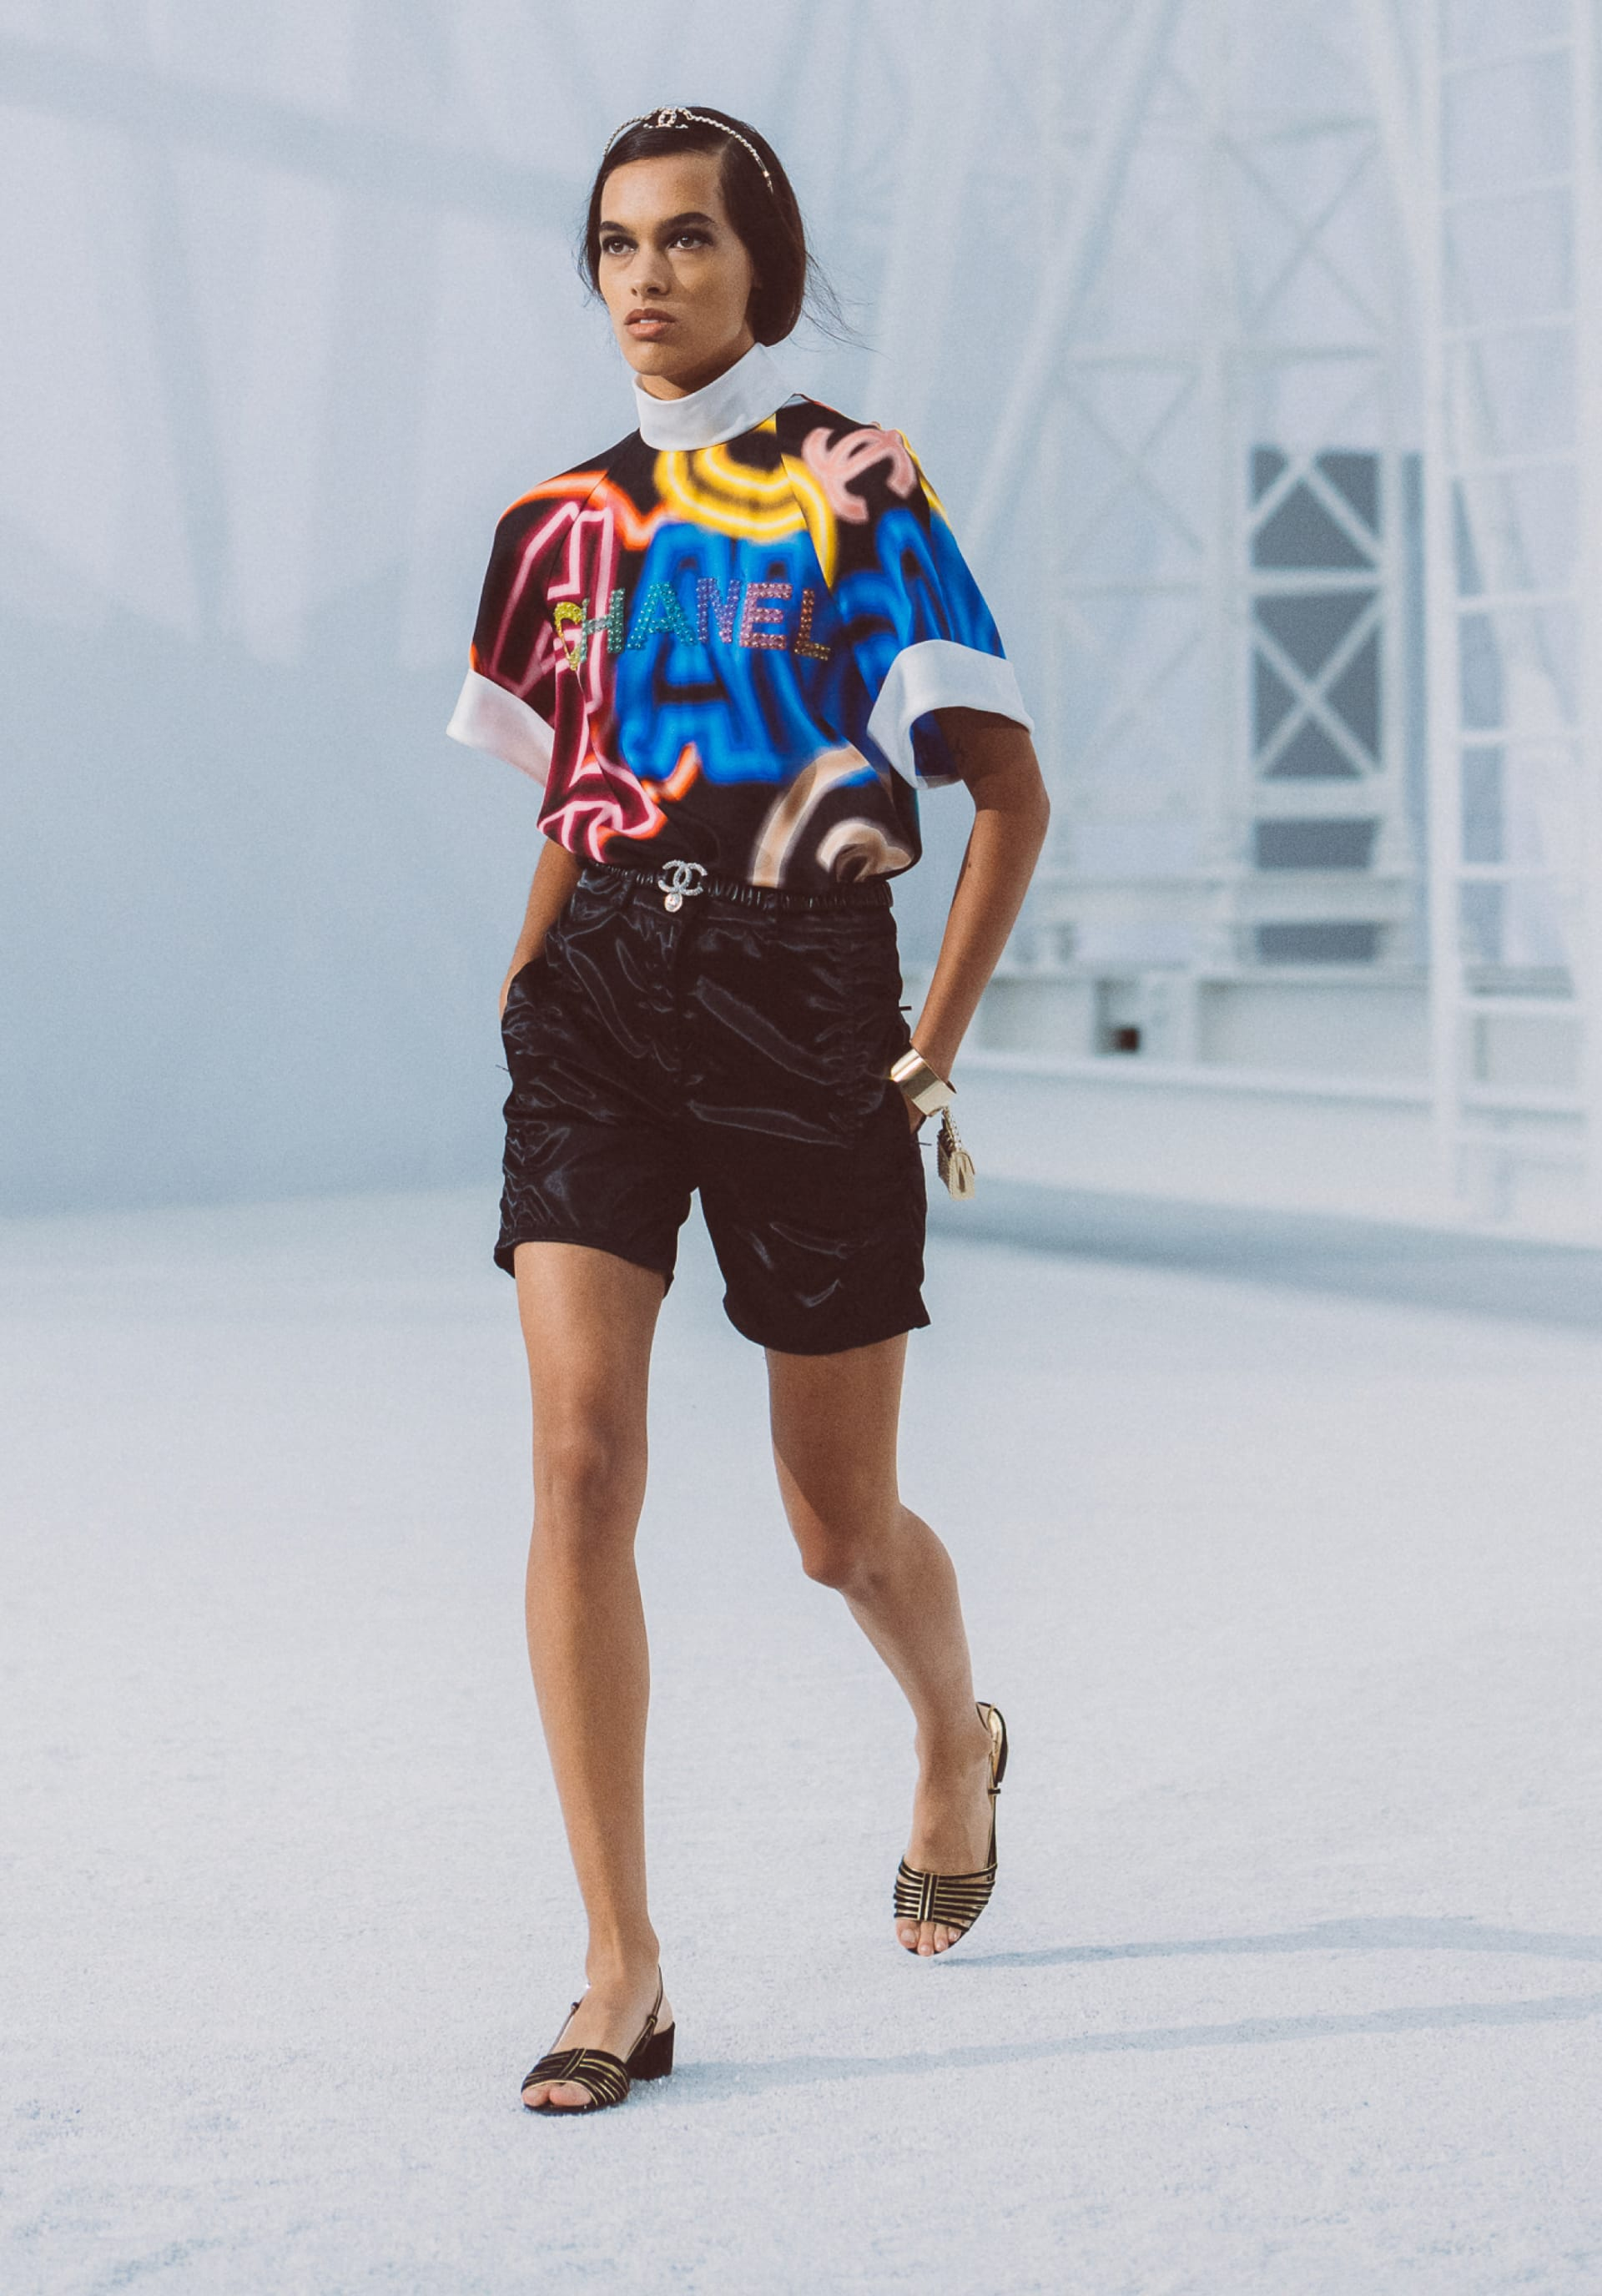 View 1 - Look30 - Spring-Summer 2021 - see full sized version